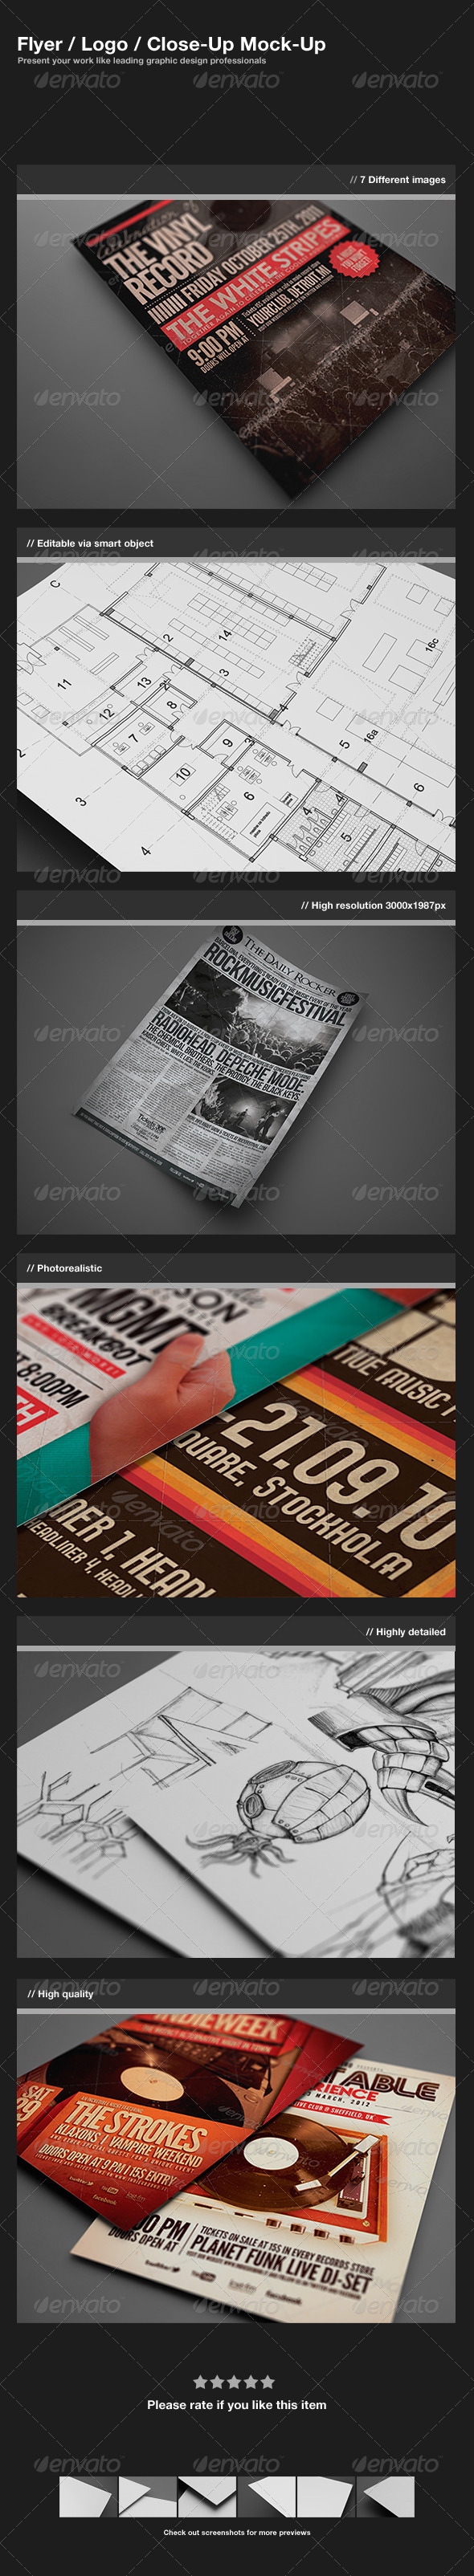 Graphicriver | Flyer / Logo / Close-Up Mock-Up Free Download free download Graphicriver | Flyer / Logo / Close-Up Mock-Up Free Download nulled Graphicriver | Flyer / Logo / Close-Up Mock-Up Free Download